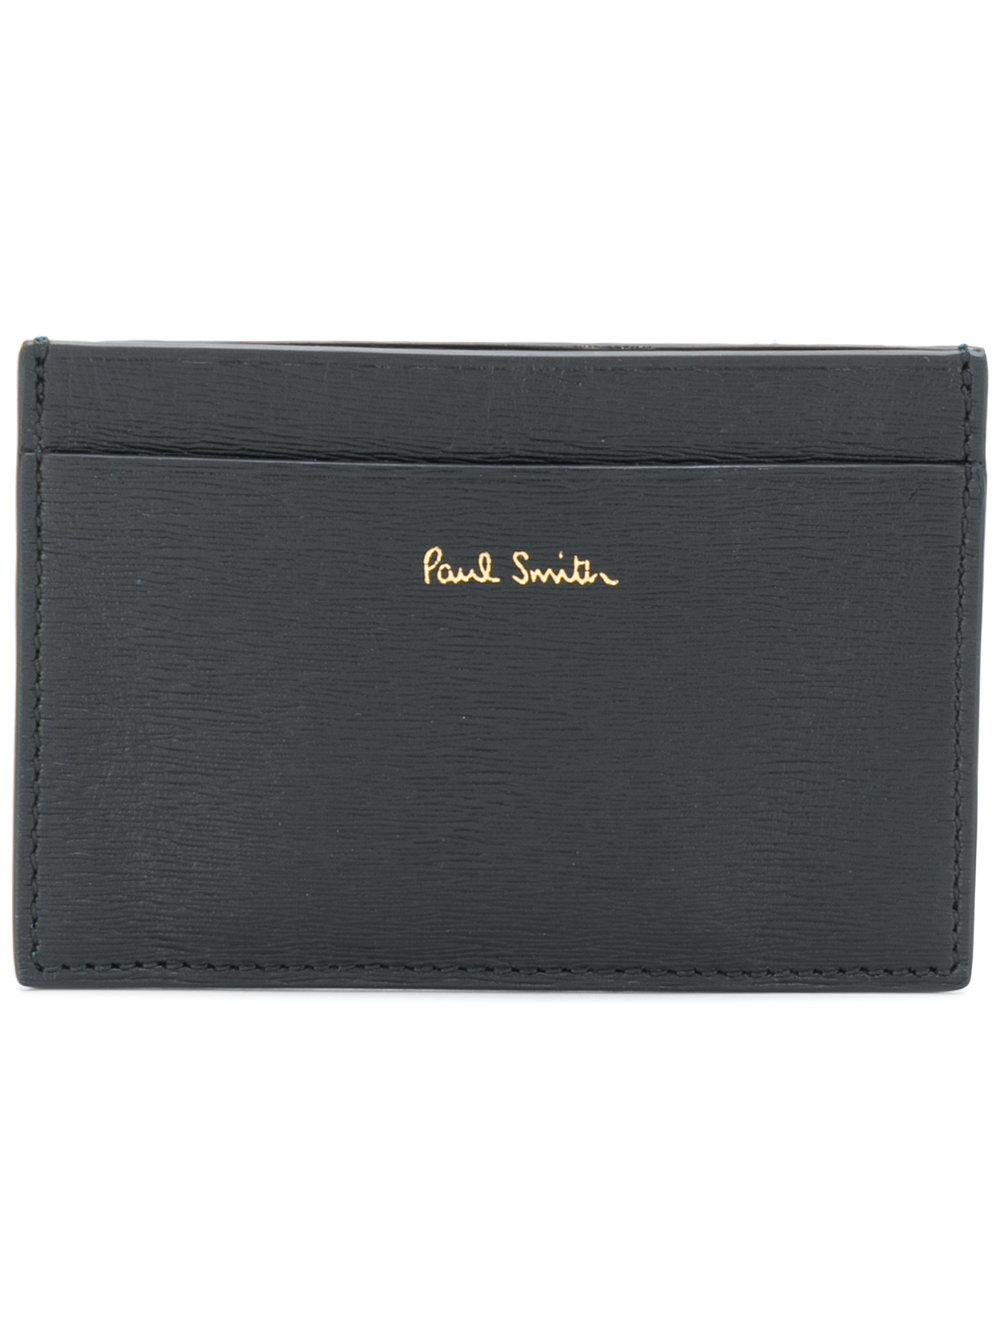 Paul Smith Credit Card Holder In Black